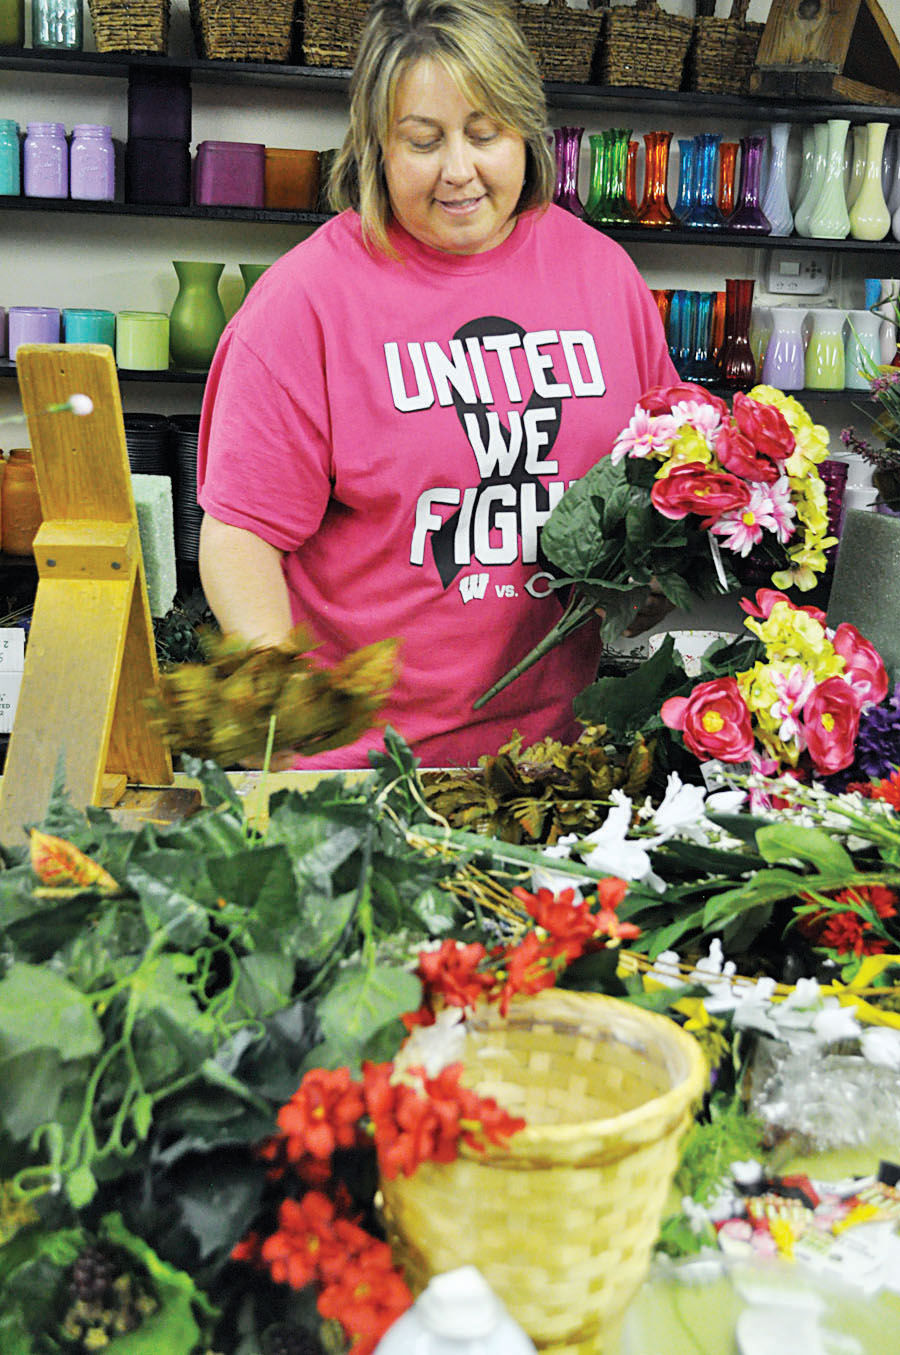 Florists help with monthly senior birthday party news akard florist owner amy haskins works at preparing greenery for arrangements meant for the woodward senior center birthday party held every month on the izmirmasajfo